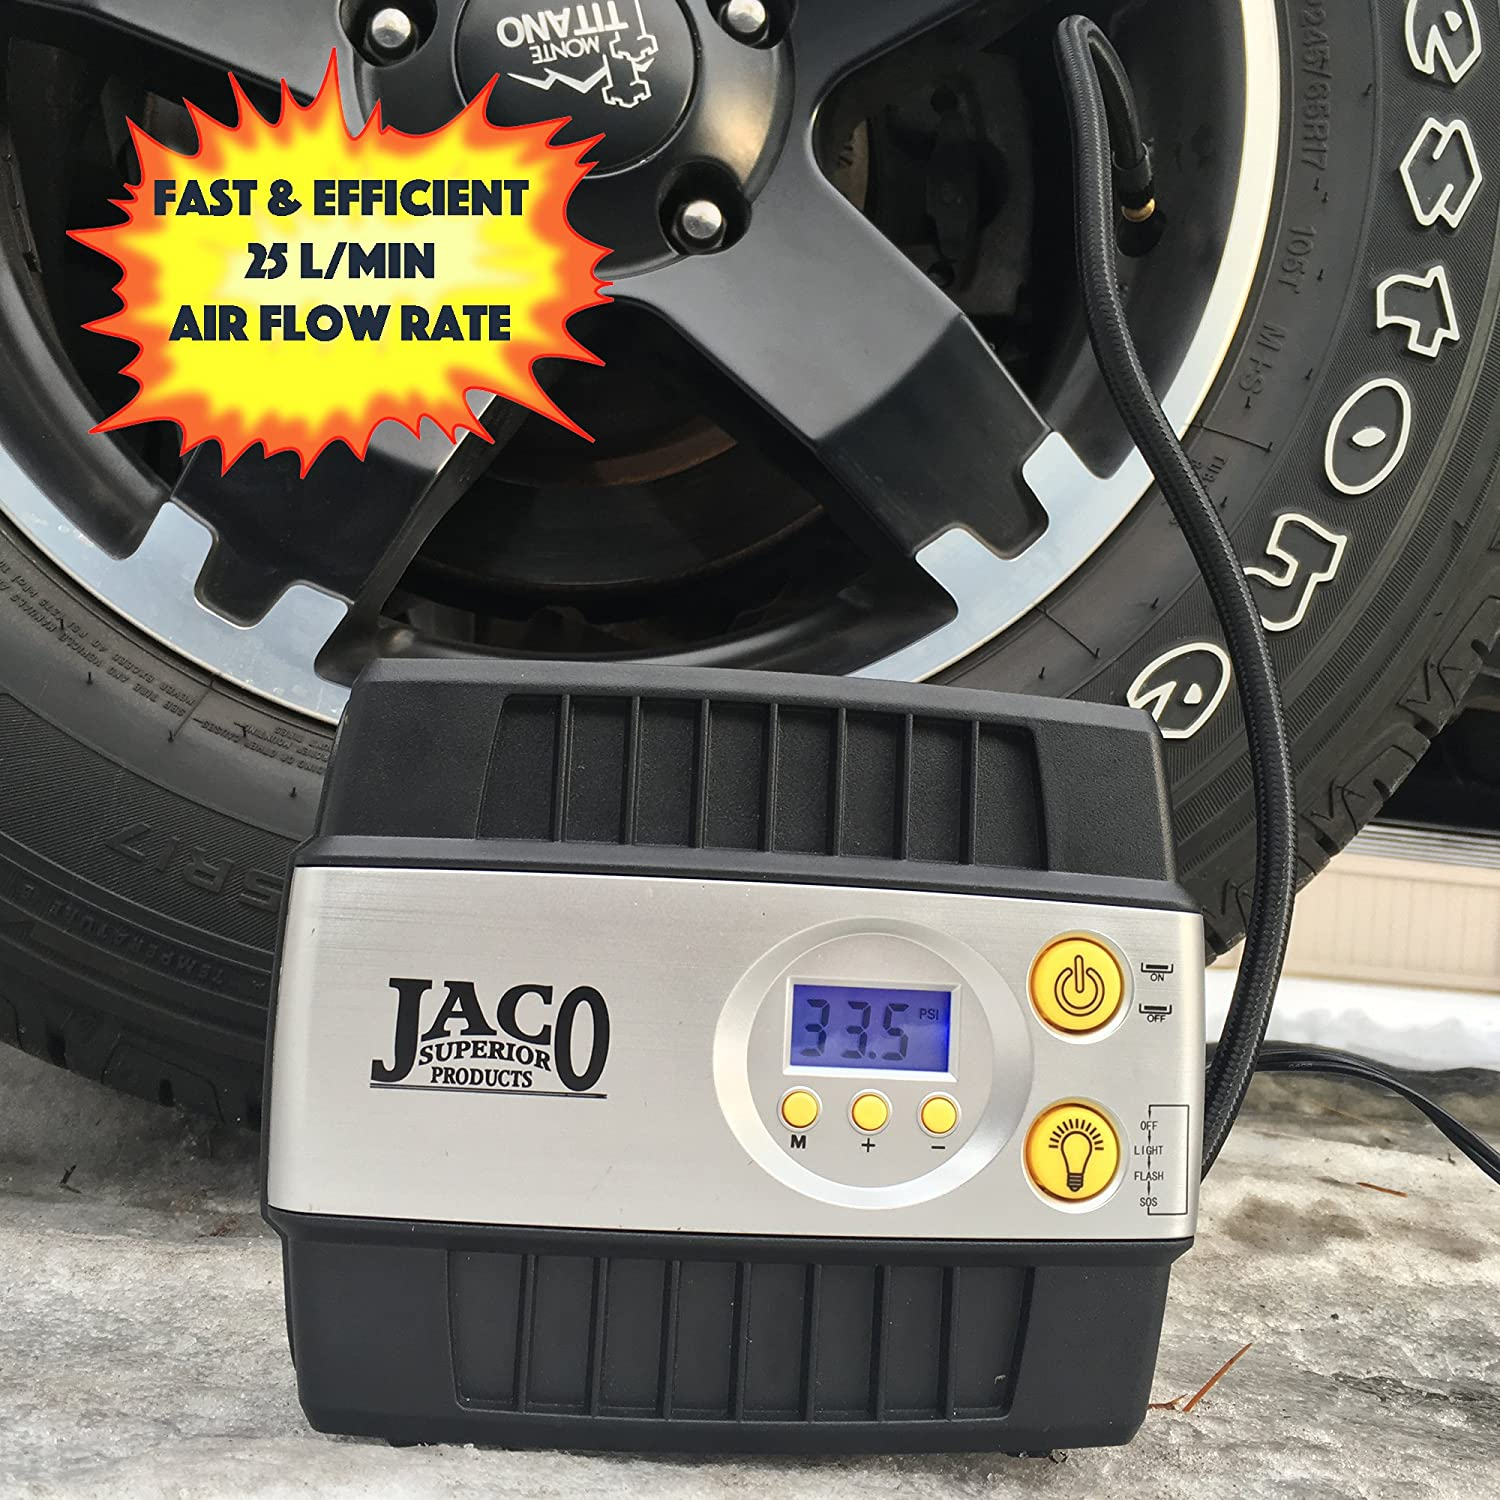 6. JACO SmartPro Mini Air Compressor - Best Mini Air Compressor